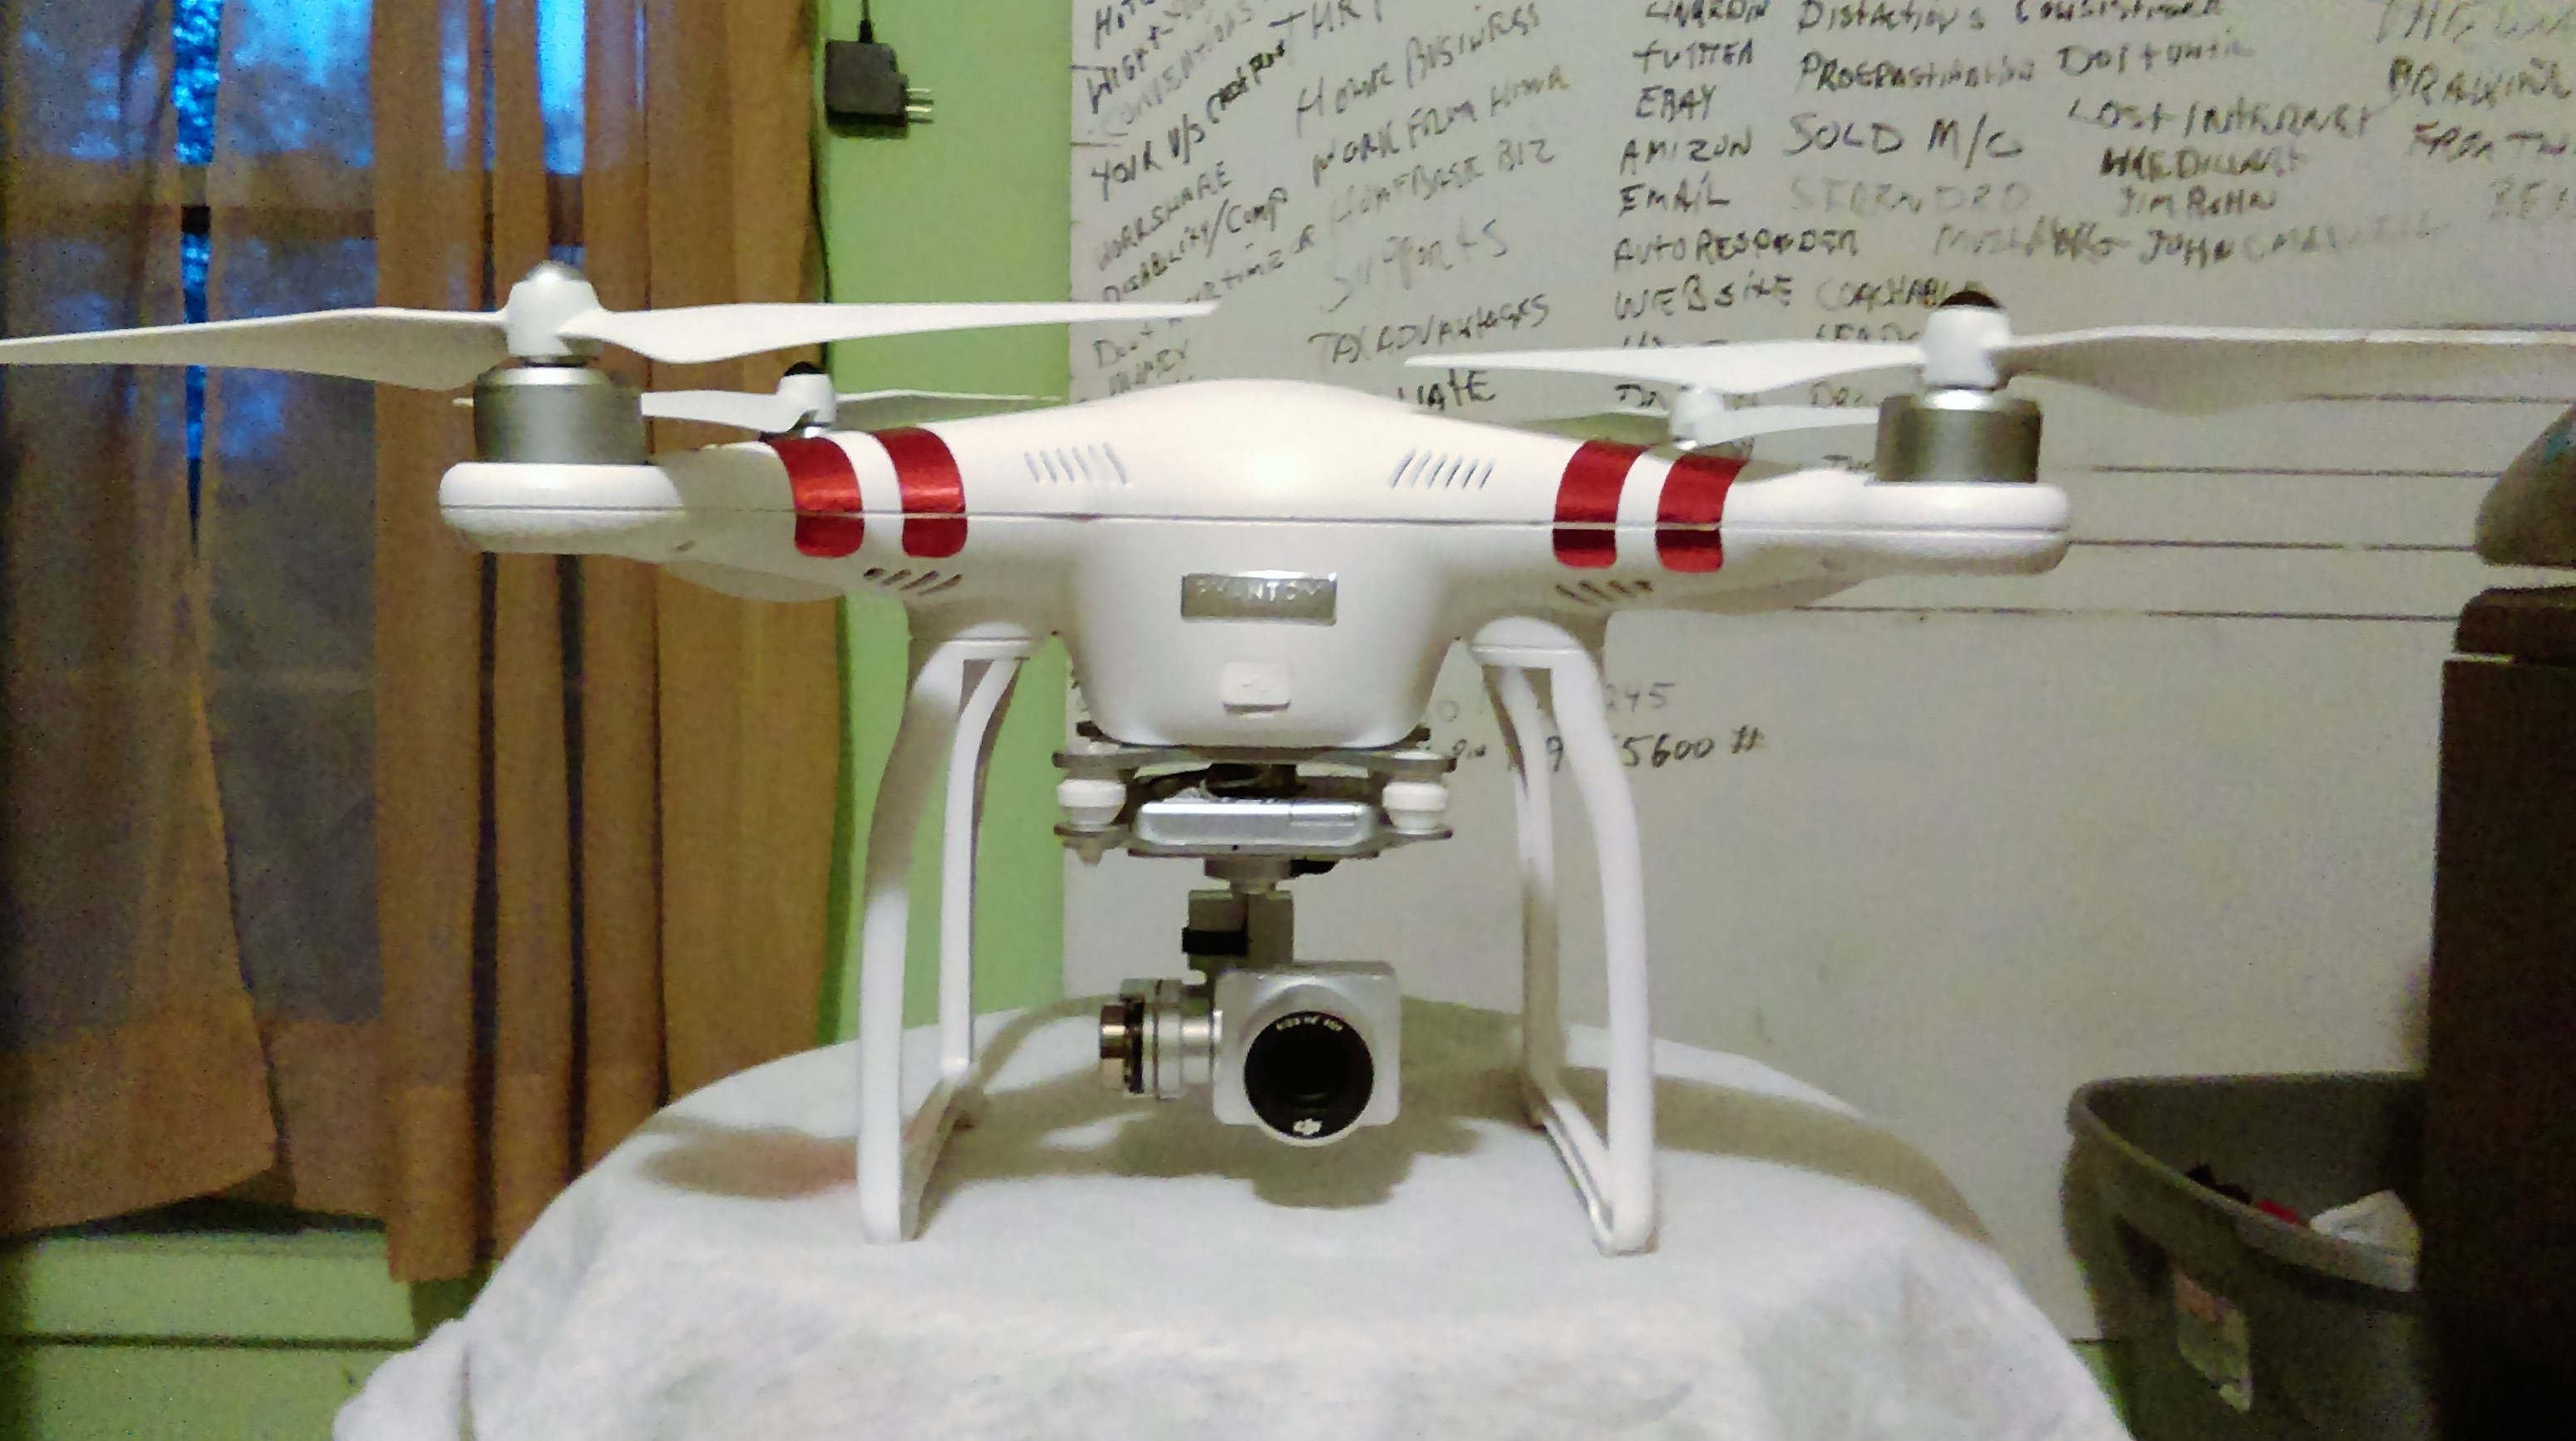 DJI Phantom 3 Crash post inspection